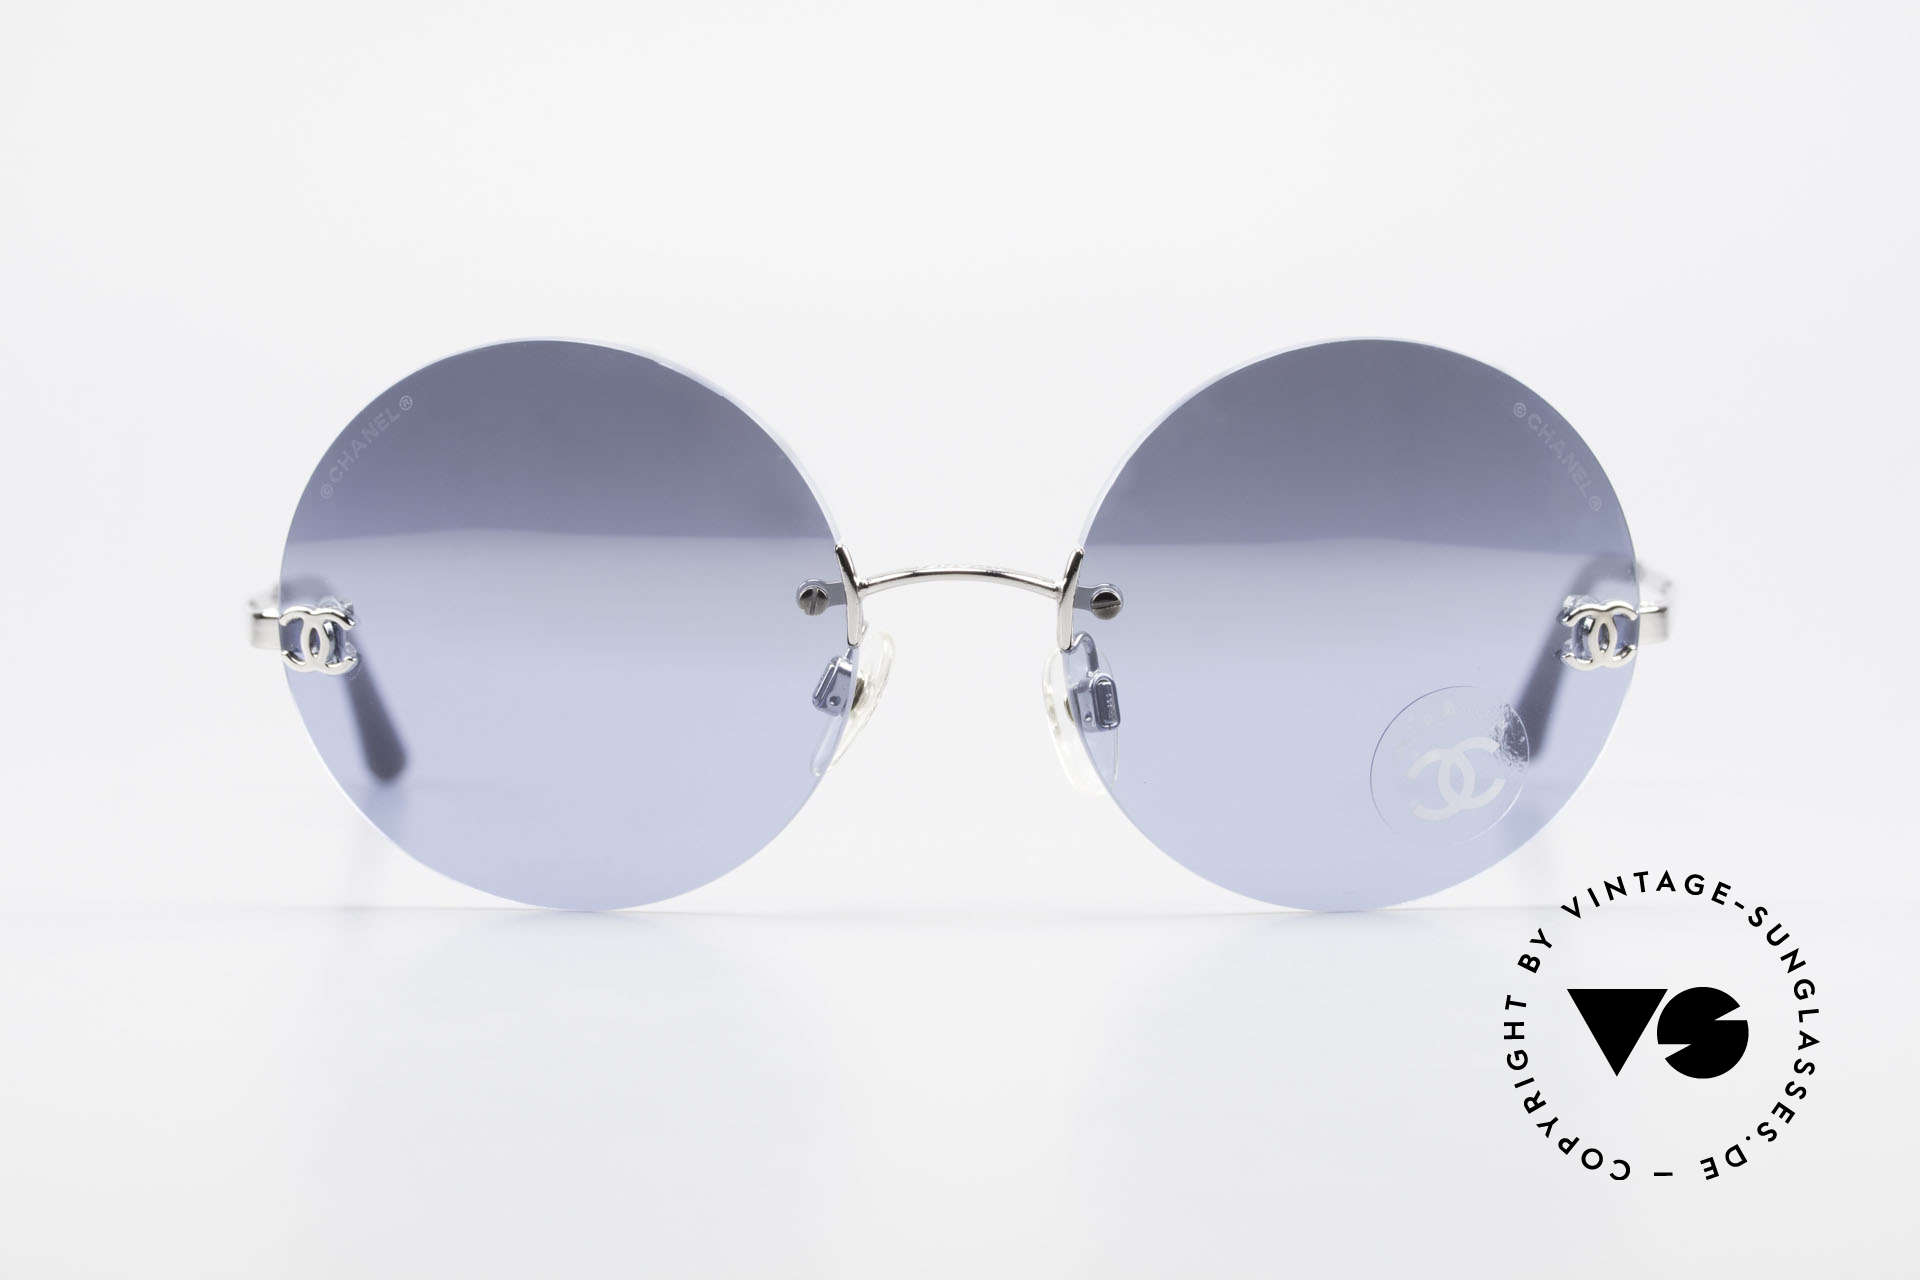 Chanel 4056 Round Luxury Shades Rimless, vintage round (rimless) sunglasses; weighs only 18g!, Made for Men and Women